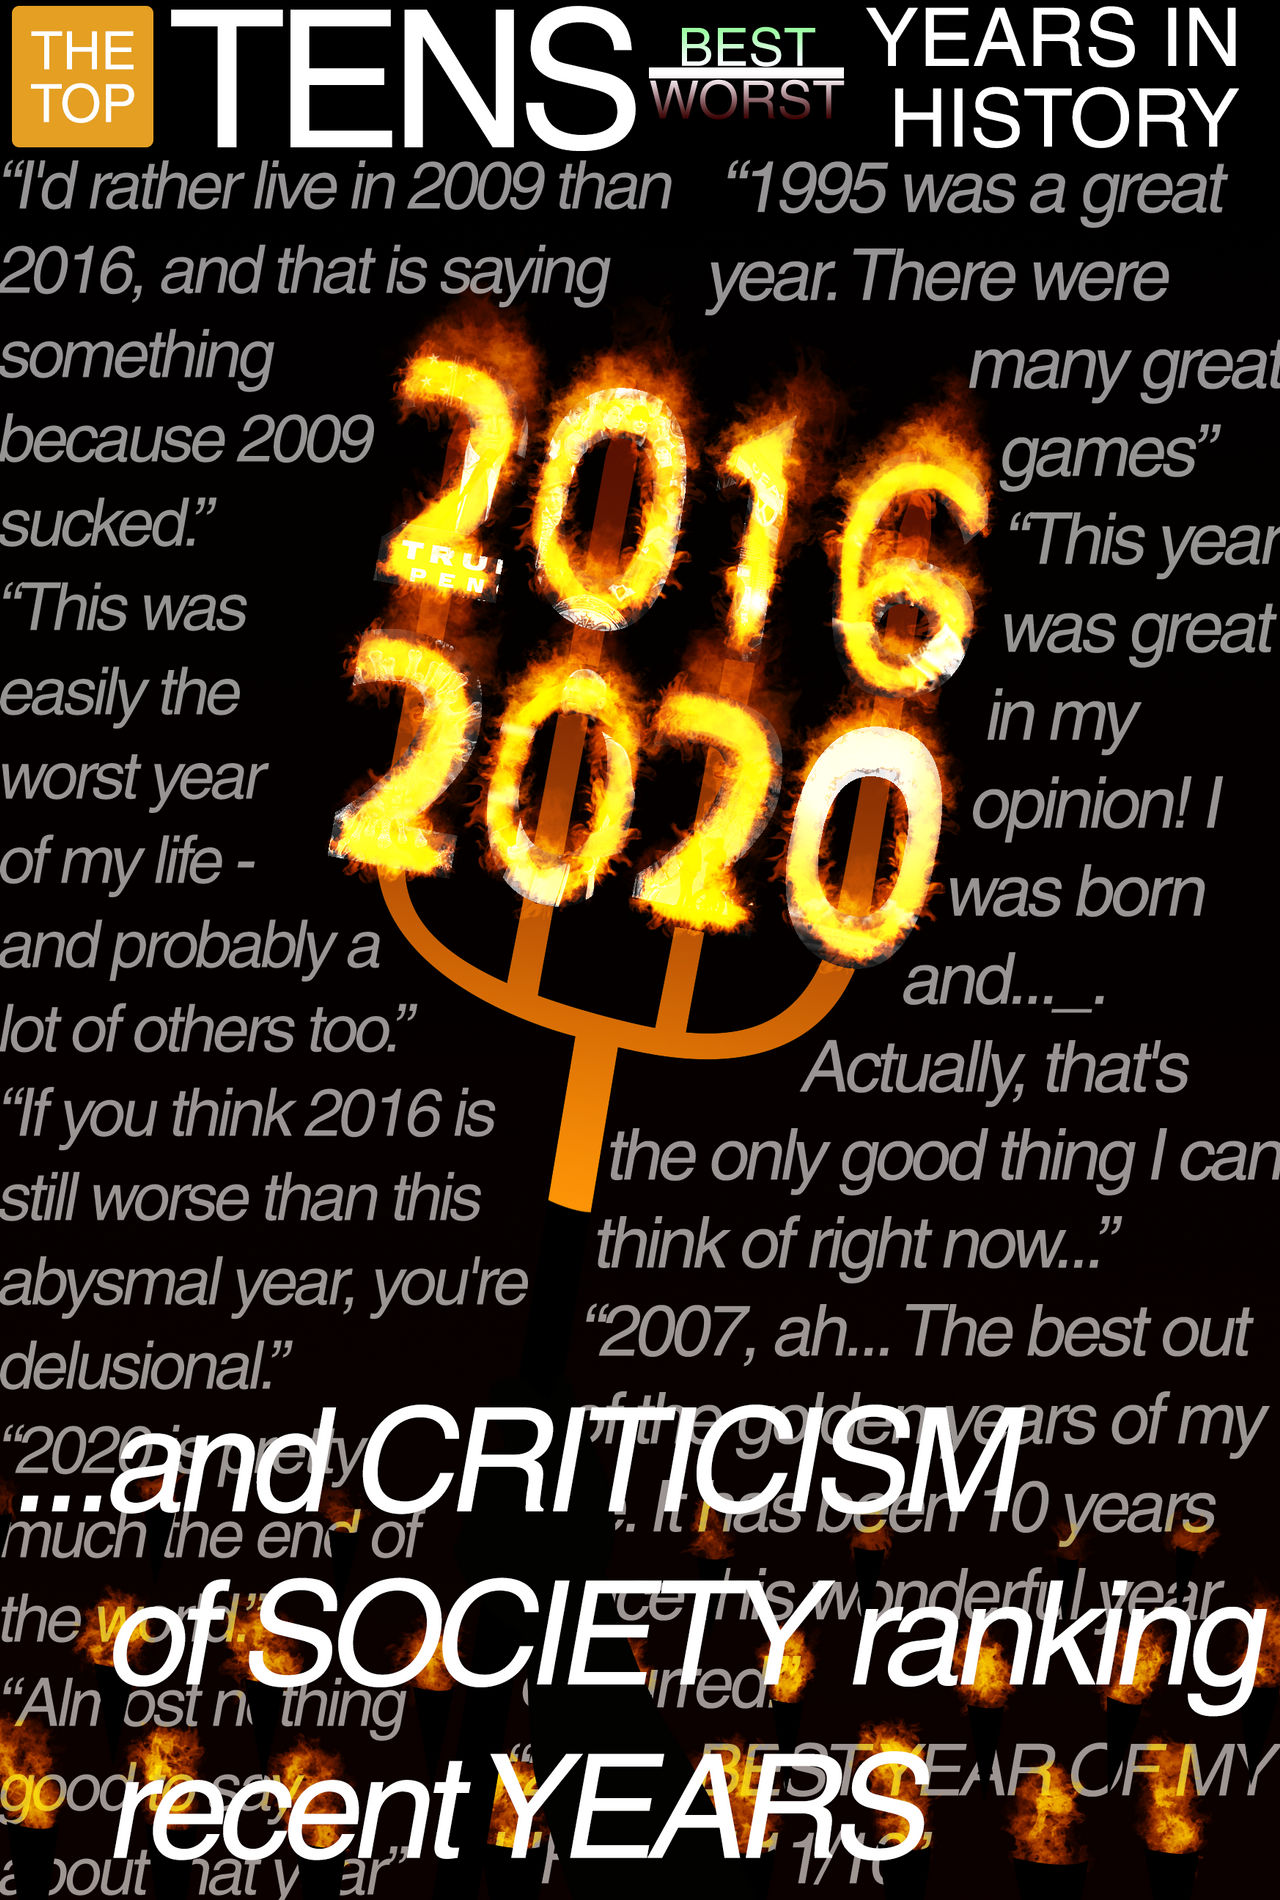 Criticism of How Society Ranks the Best/Worst Year